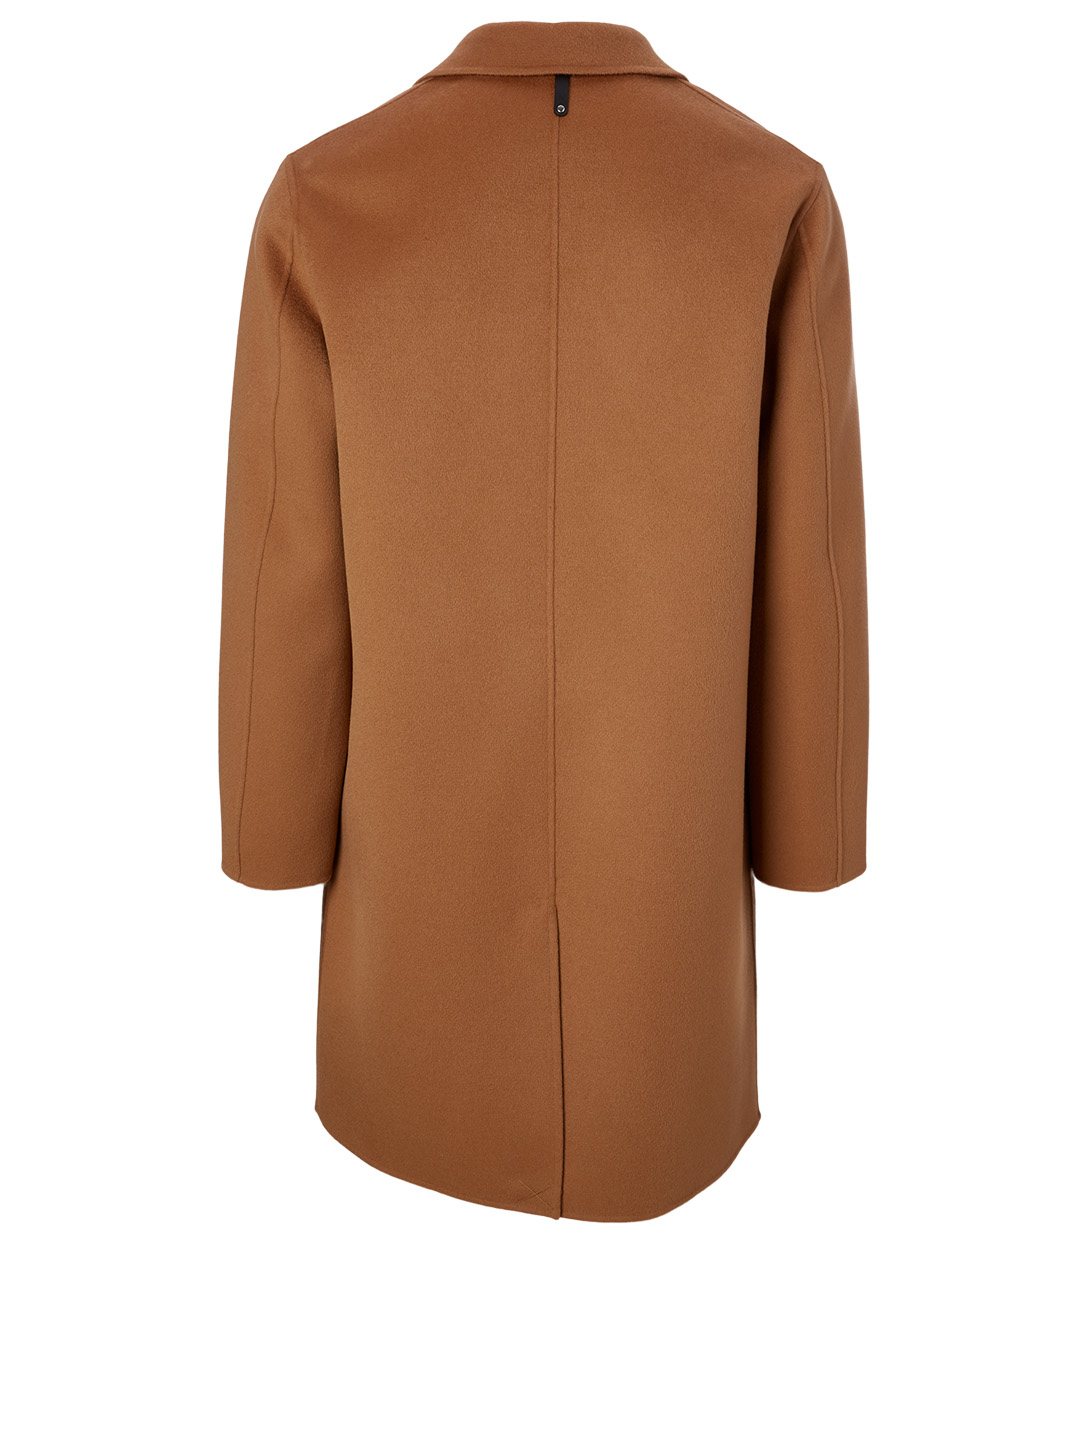 MACKAGE Vico Wool Coat Men's Brown